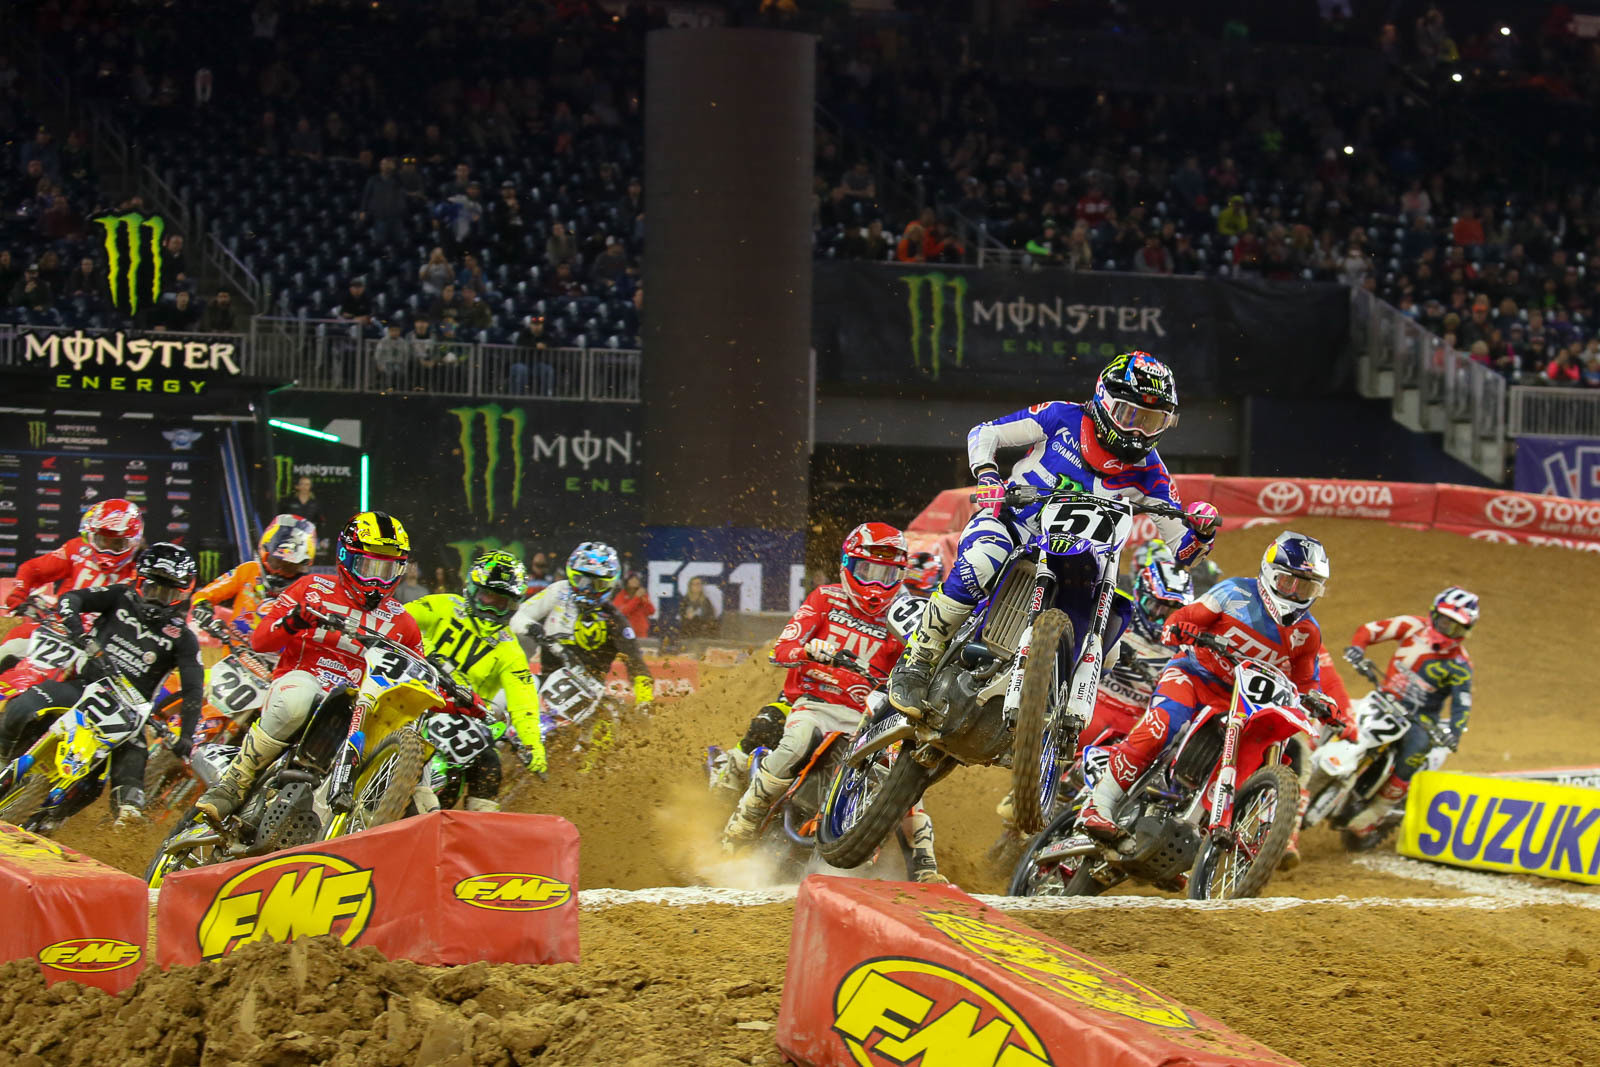 Justin Barcia scored the 450 main event holeshot on Saturday night, and with a pair of podiums so far, plus him being in the top three, it sure seems unlikely that Yamaha would cut him loose at the end of his guaranteed six-race deal.